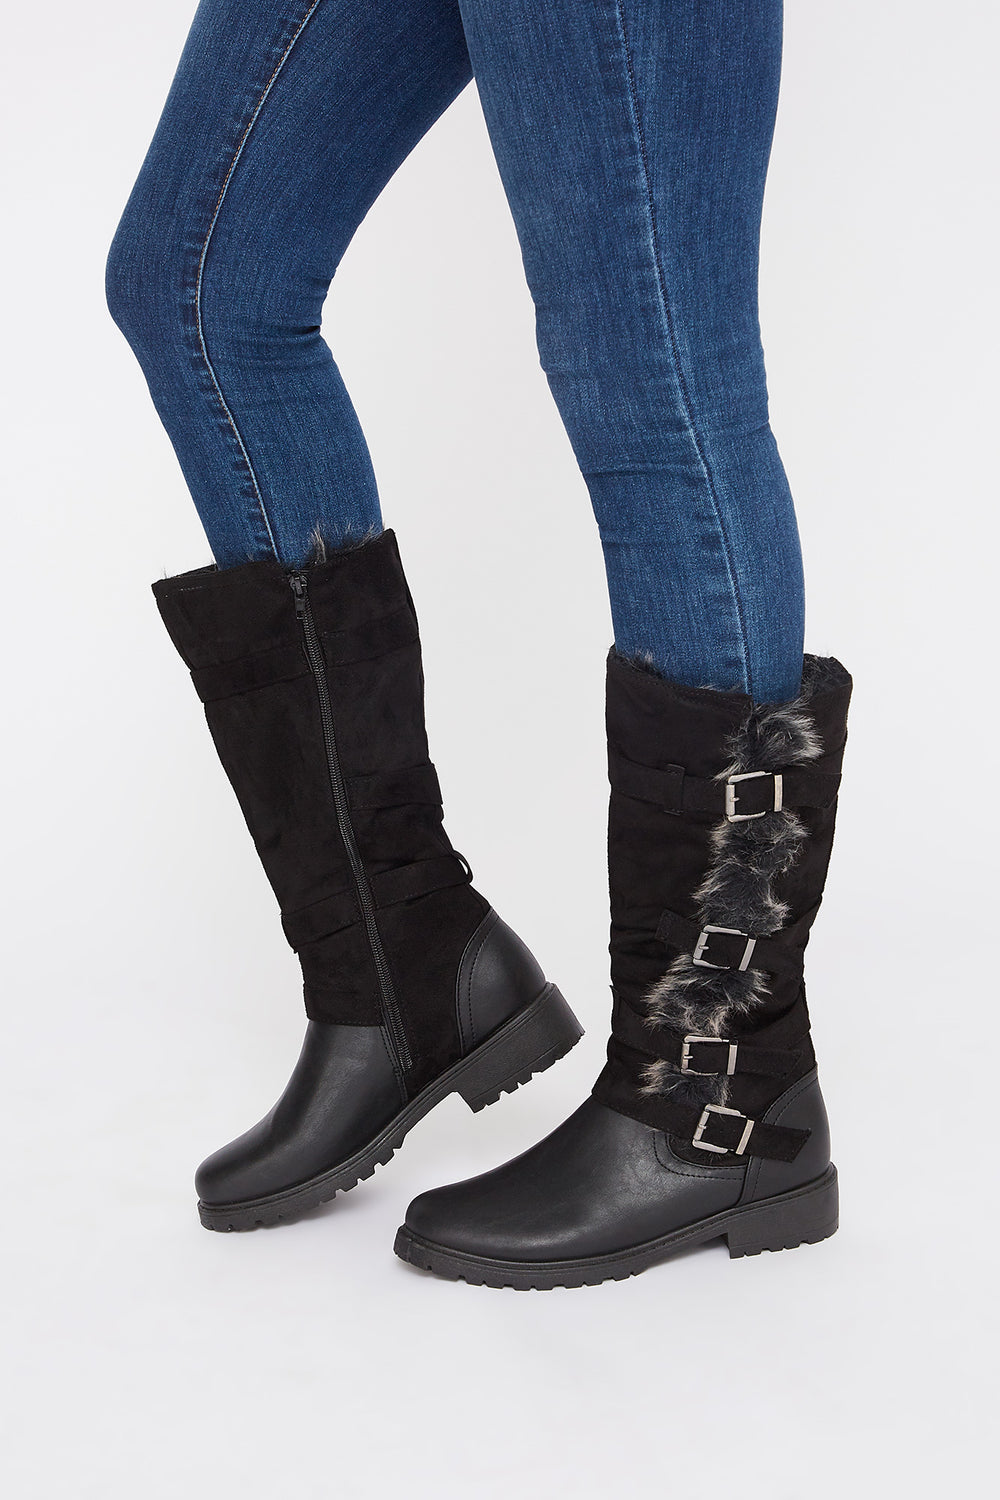 Buckle Faux-Fur Mid Calf Boot Black